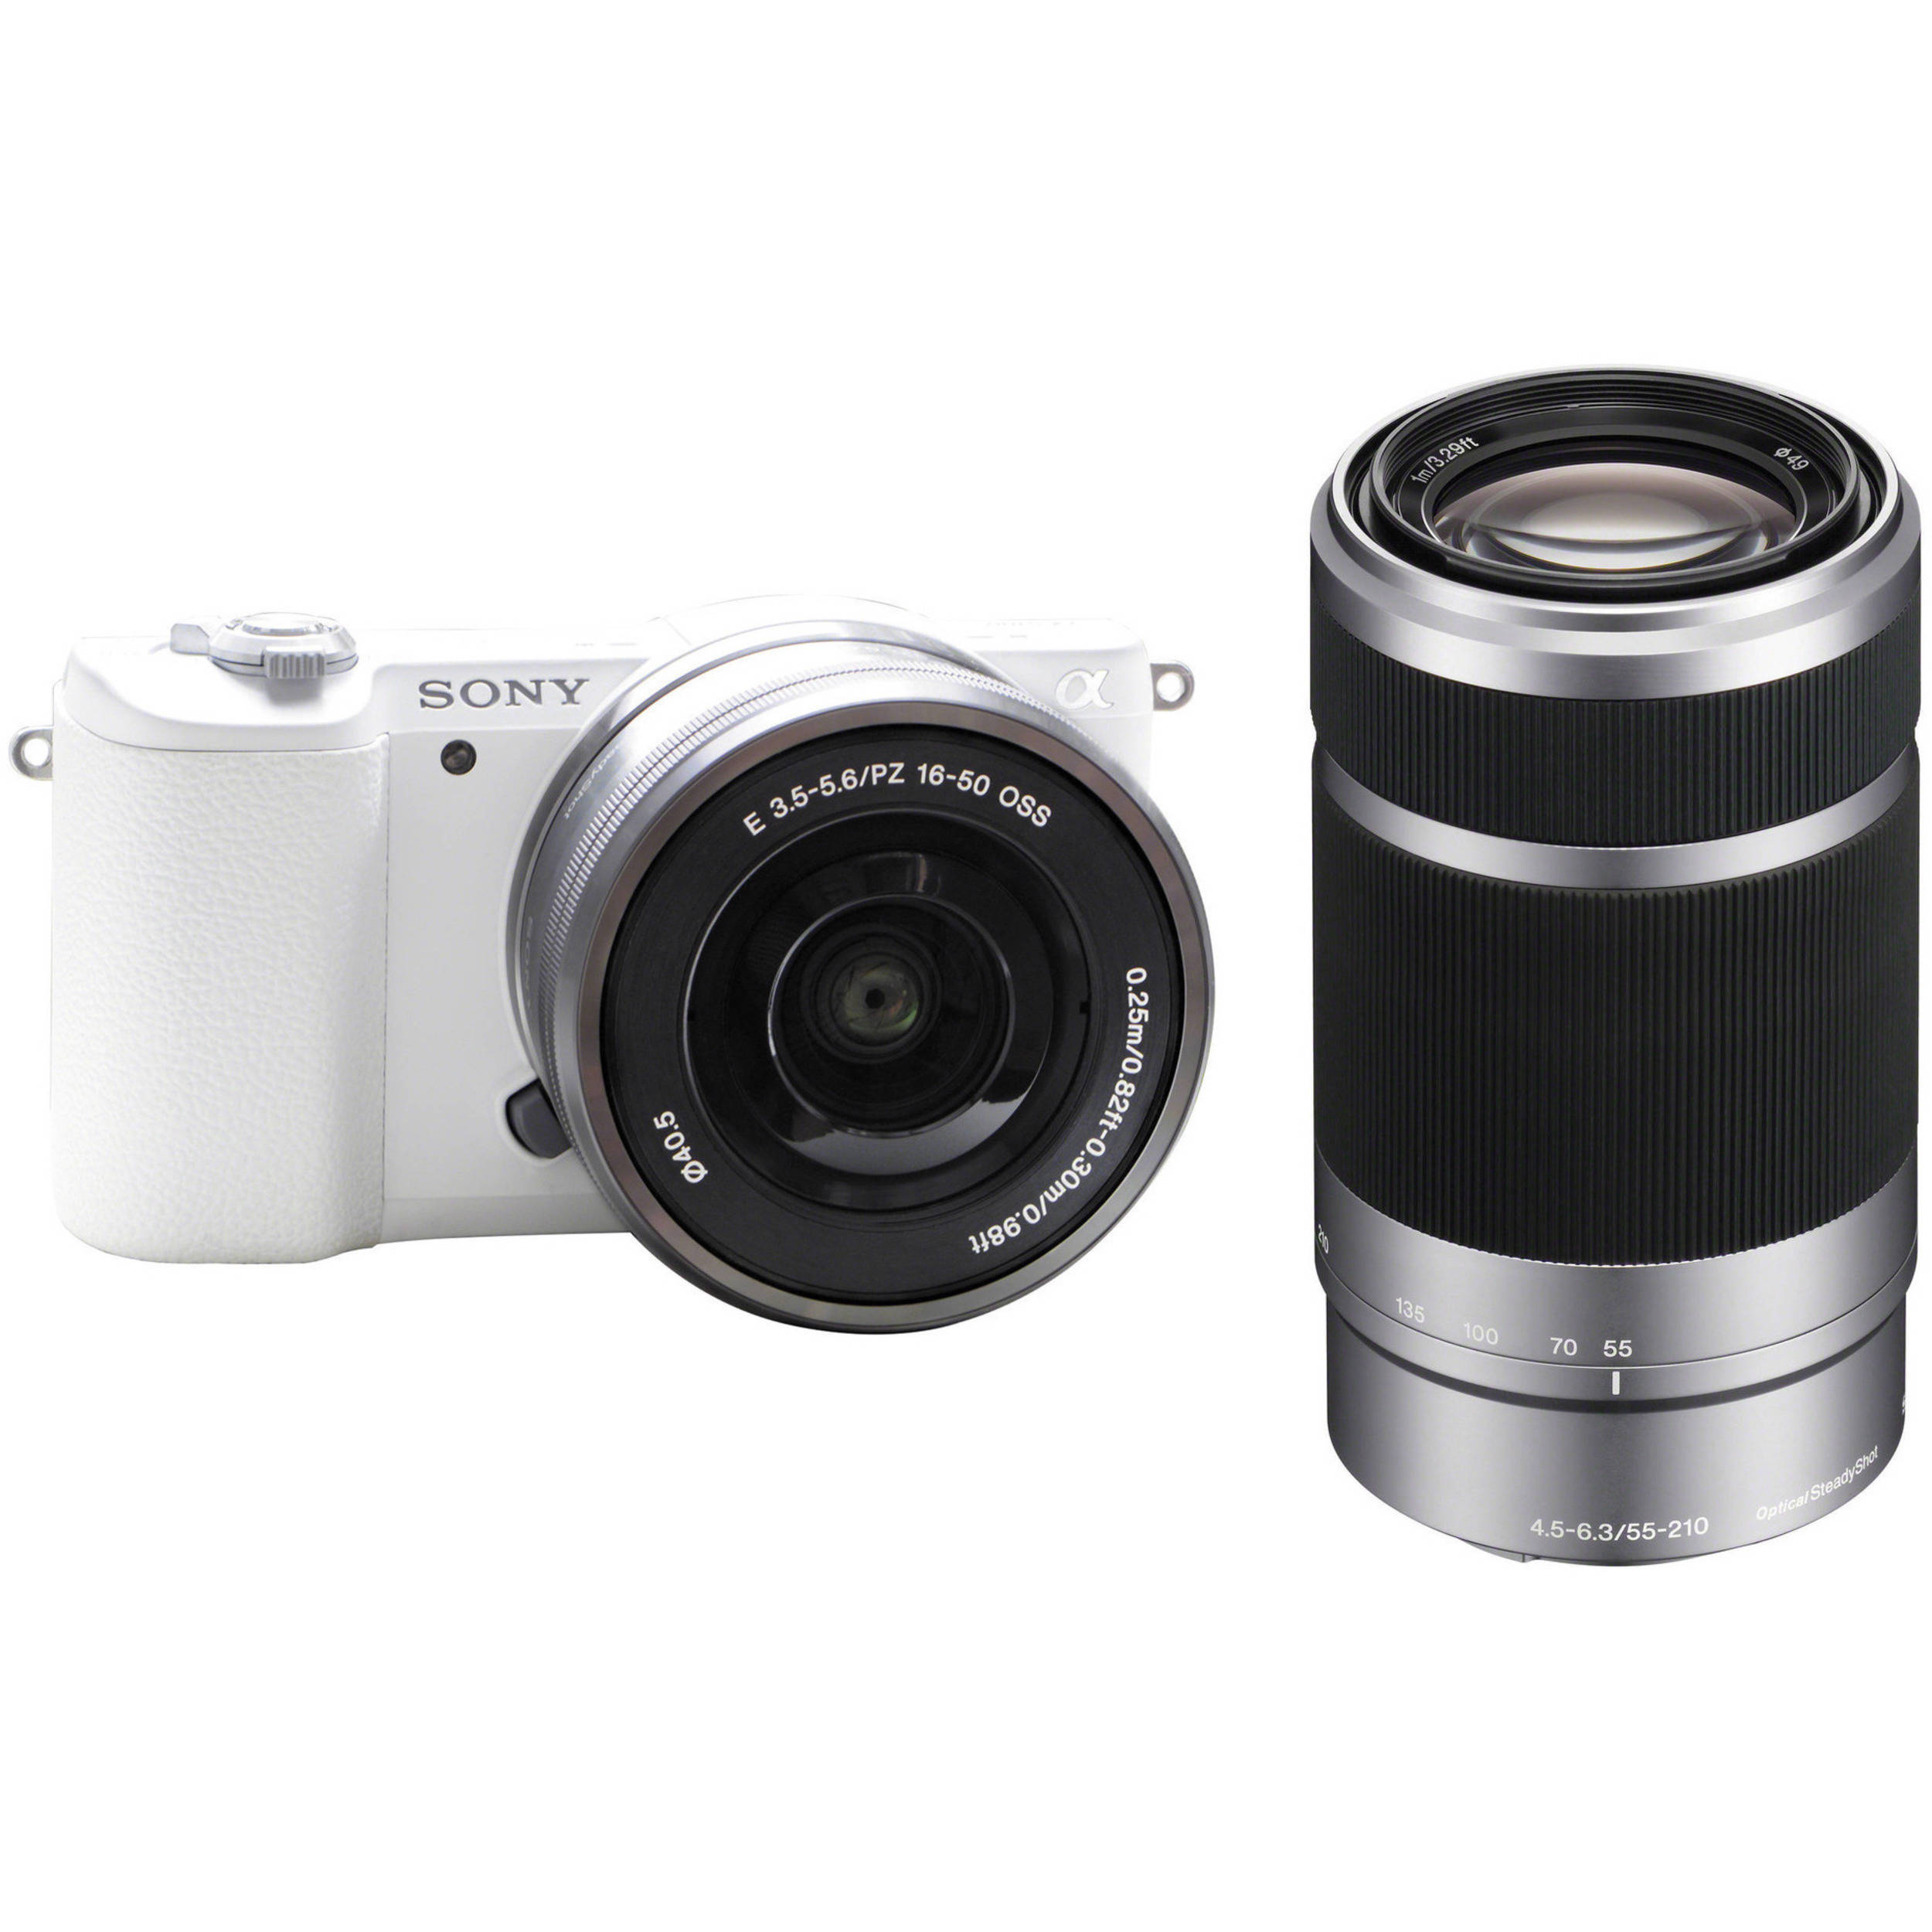 sony 55 210mm. sony alpha a5100 mirrorless digital camera kit with silver 16-50mm and 55- 210mm 55